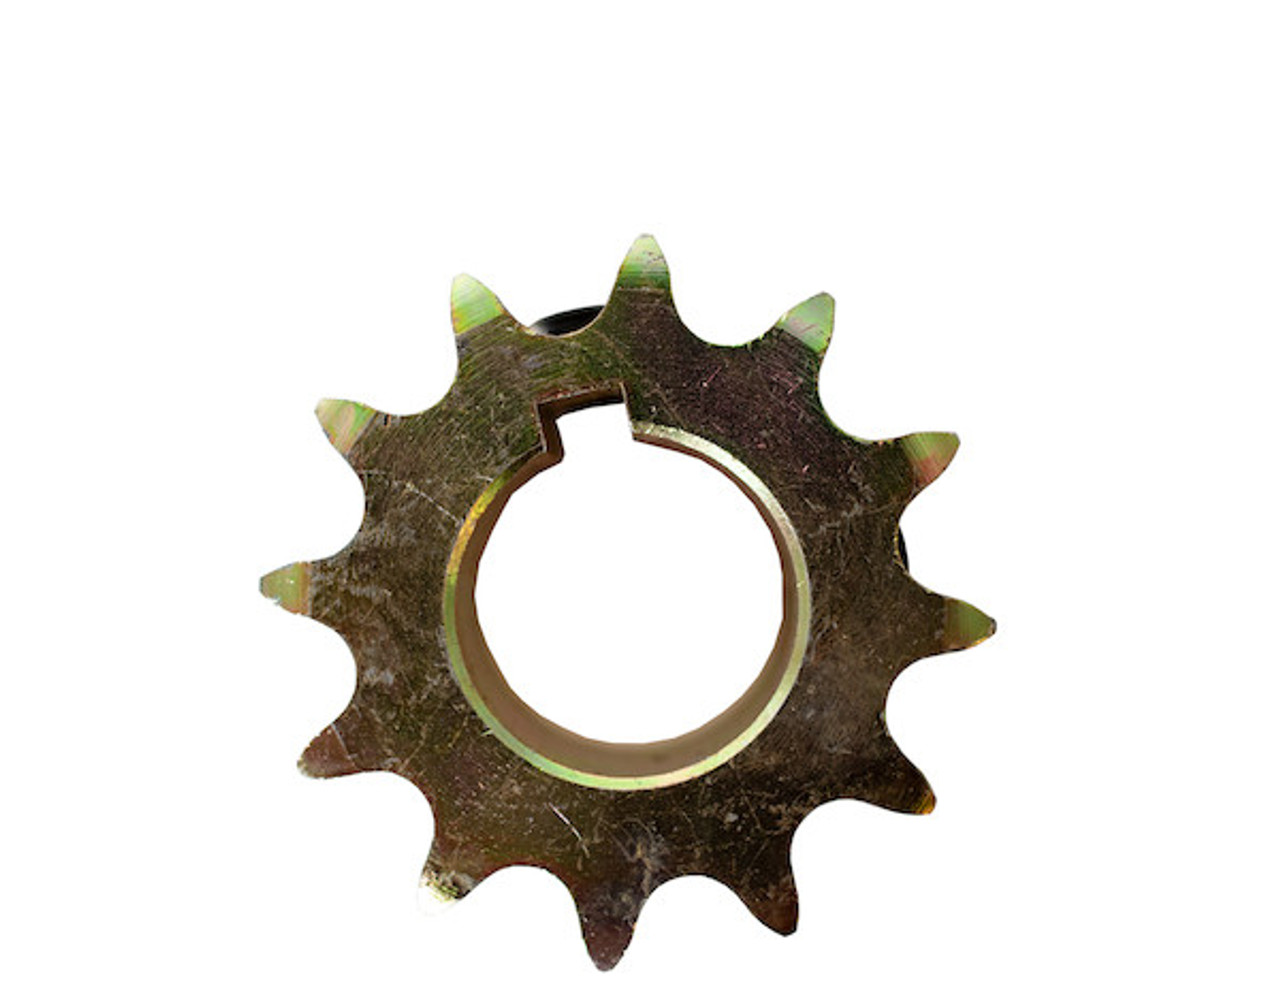 BUYERS 1411915 Replacement 1 Inch 12-Tooth Yellow Zinc Engine Sprocket With Set Screws For #40 Chain For SaltDogg Salt Spreader 3